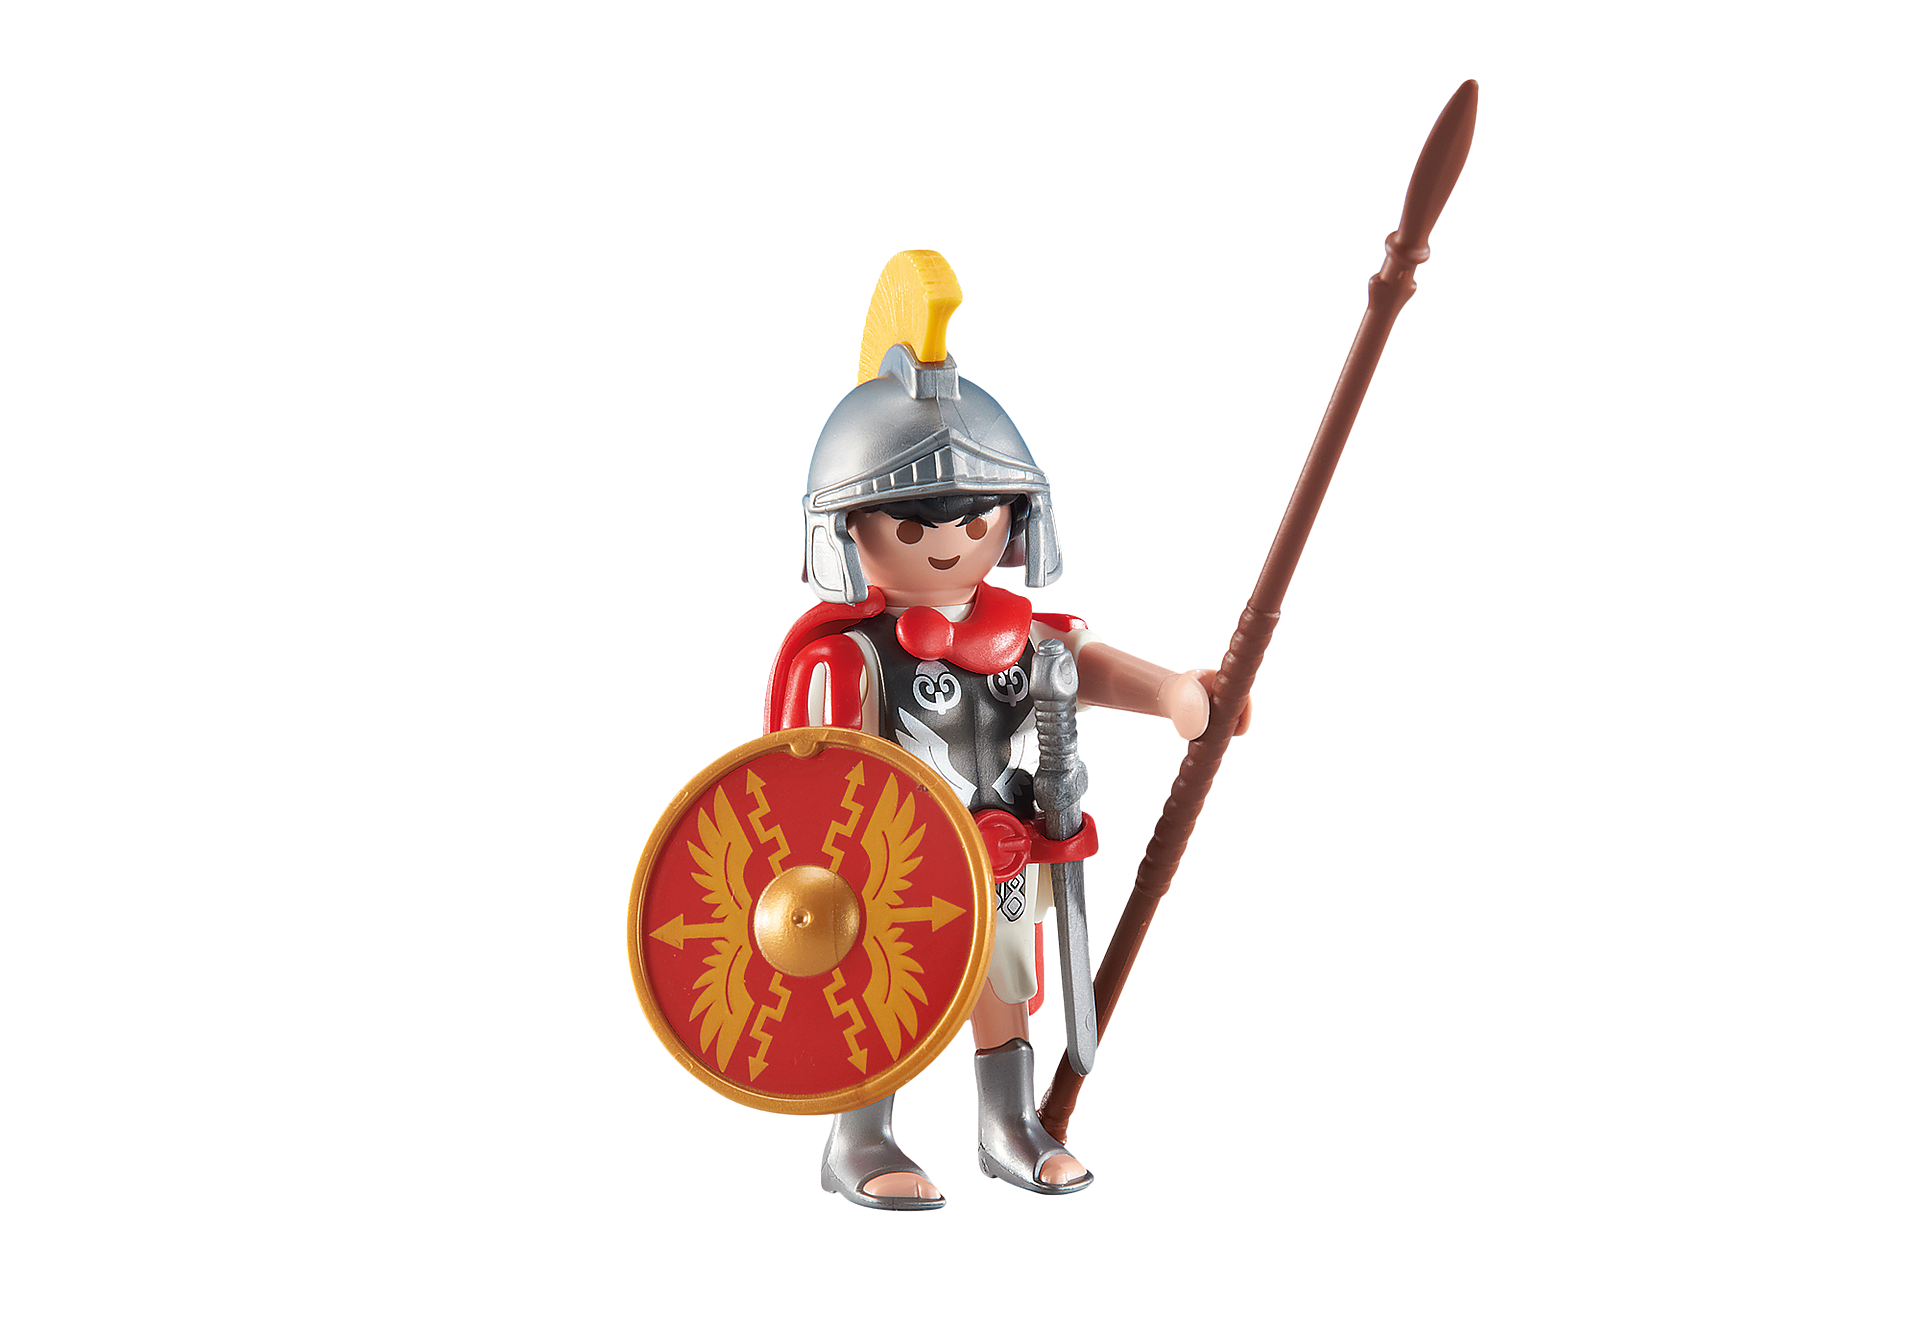 http://media.playmobil.com/i/playmobil/6491_product_detail/Romeinse tribuun